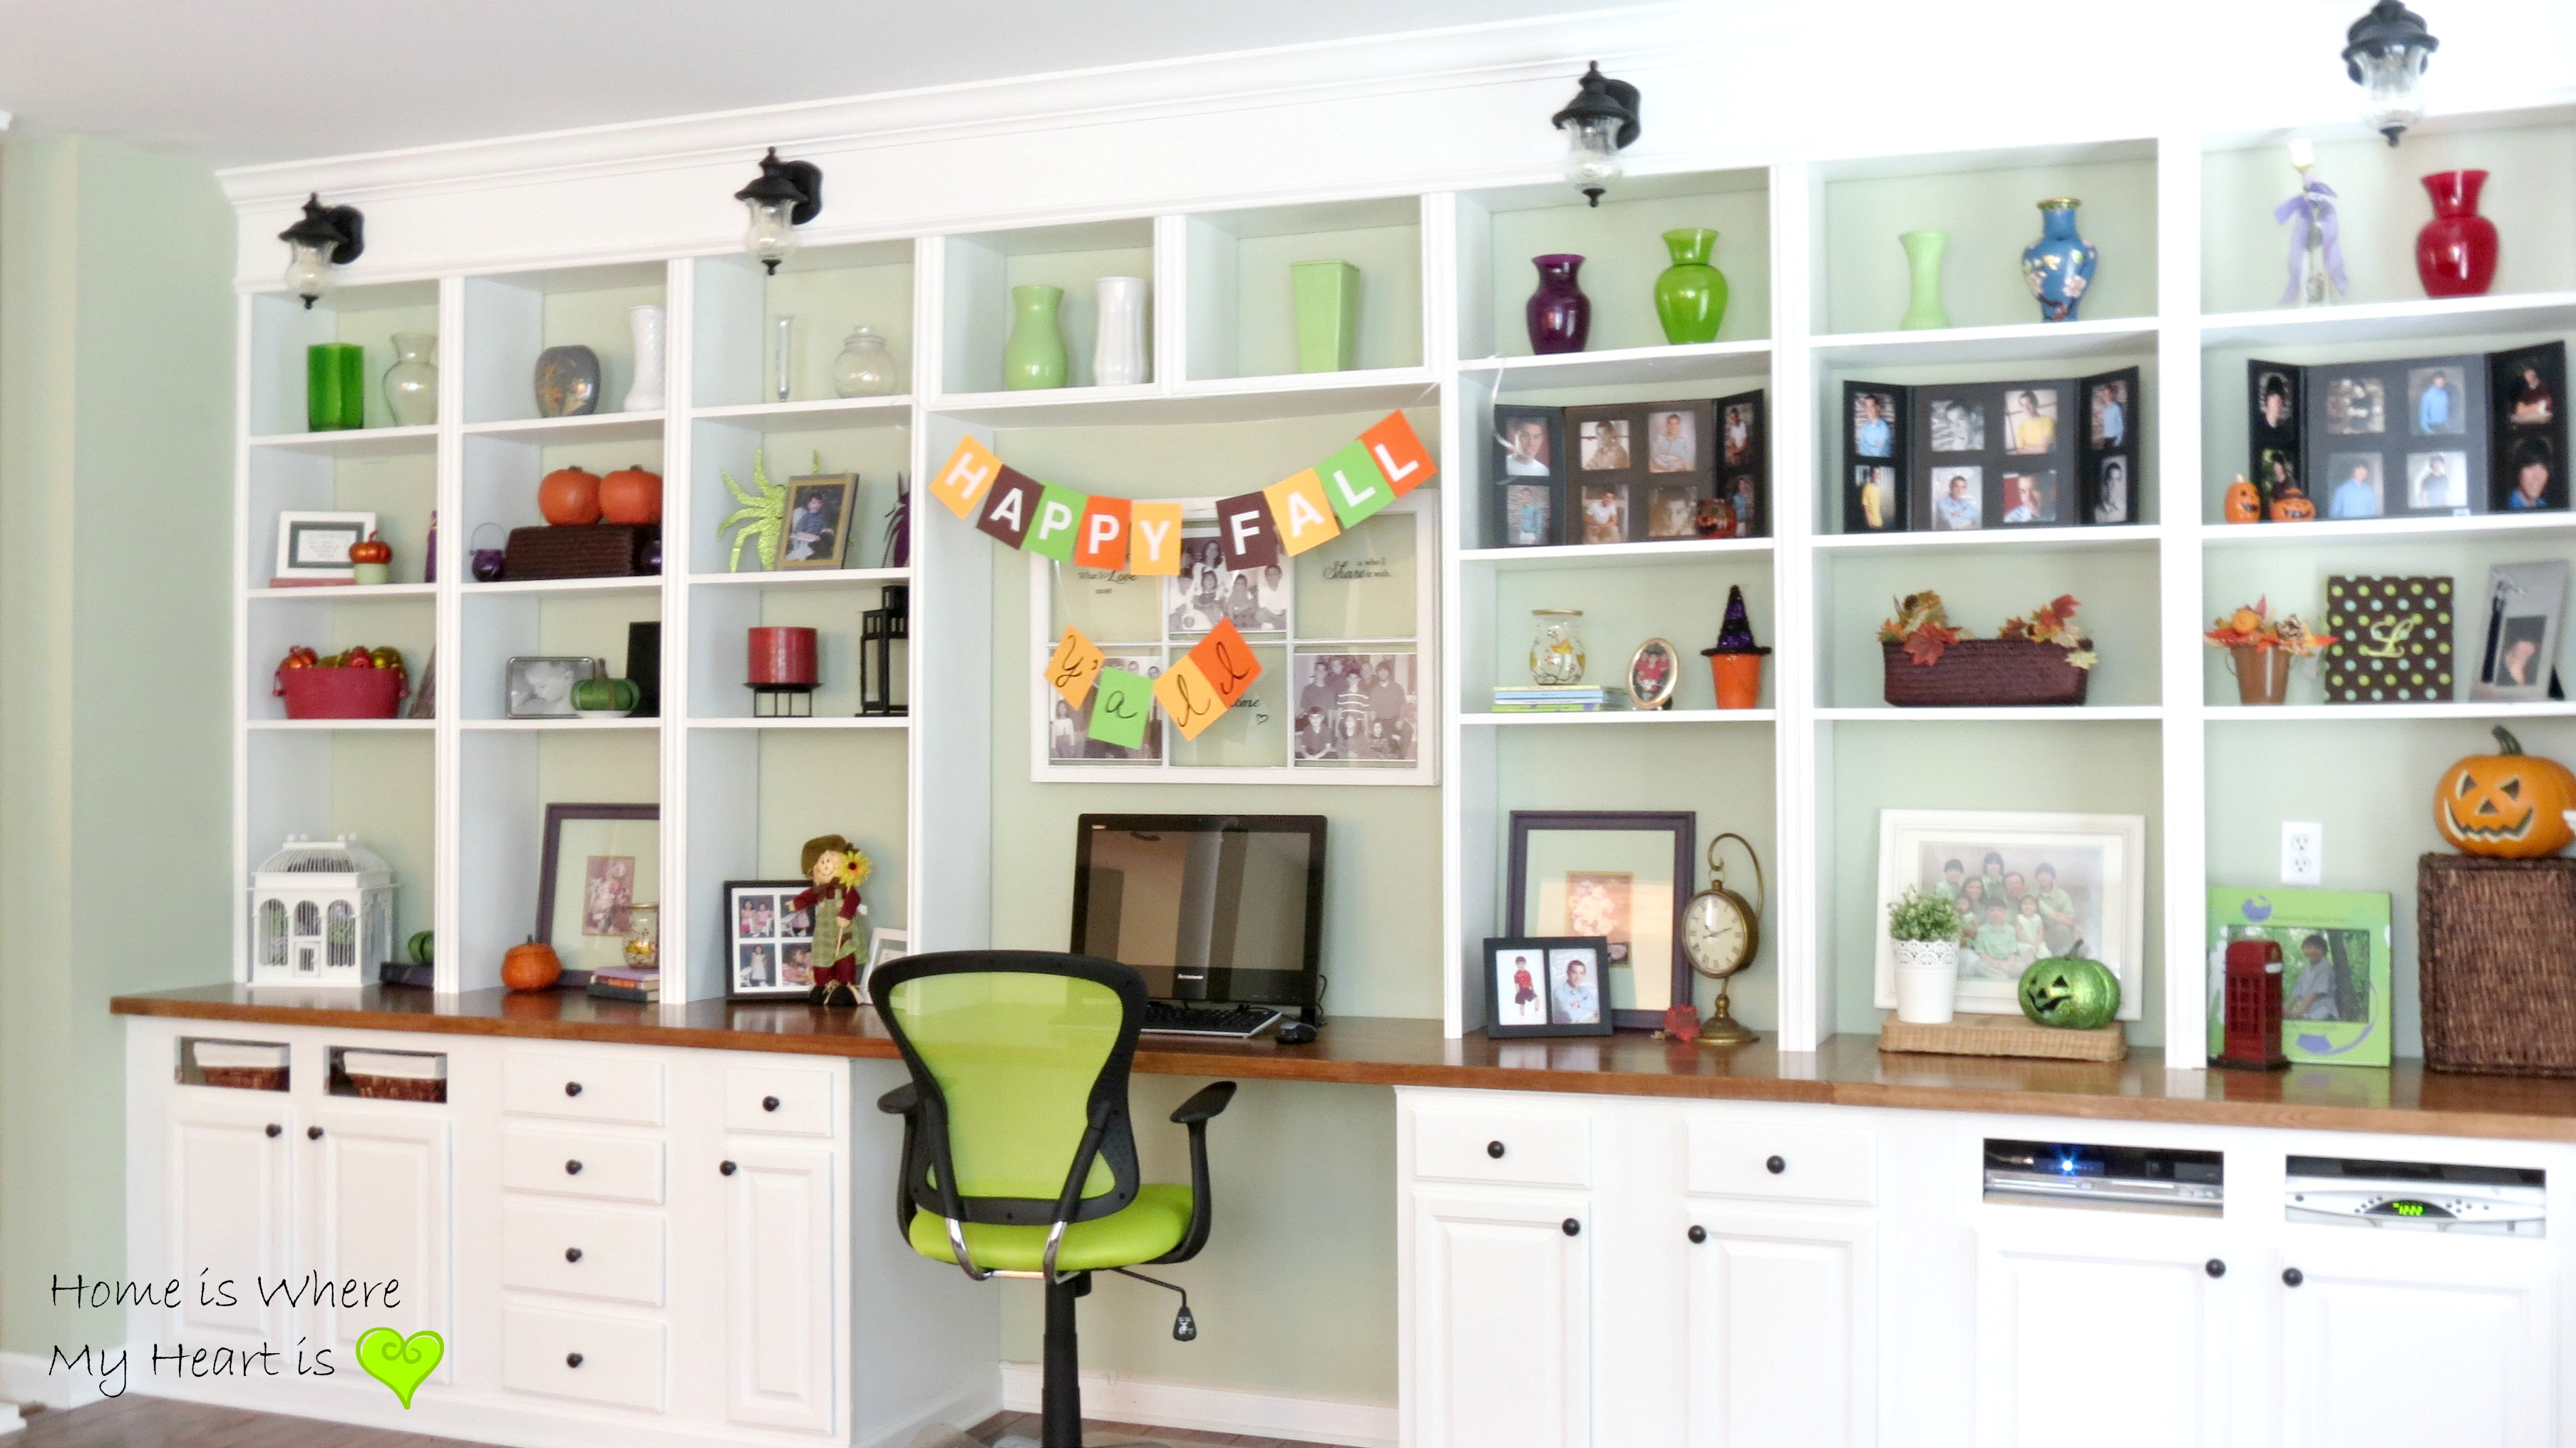 Decorated Wall To Built In Shelves And Desk Home Is Where